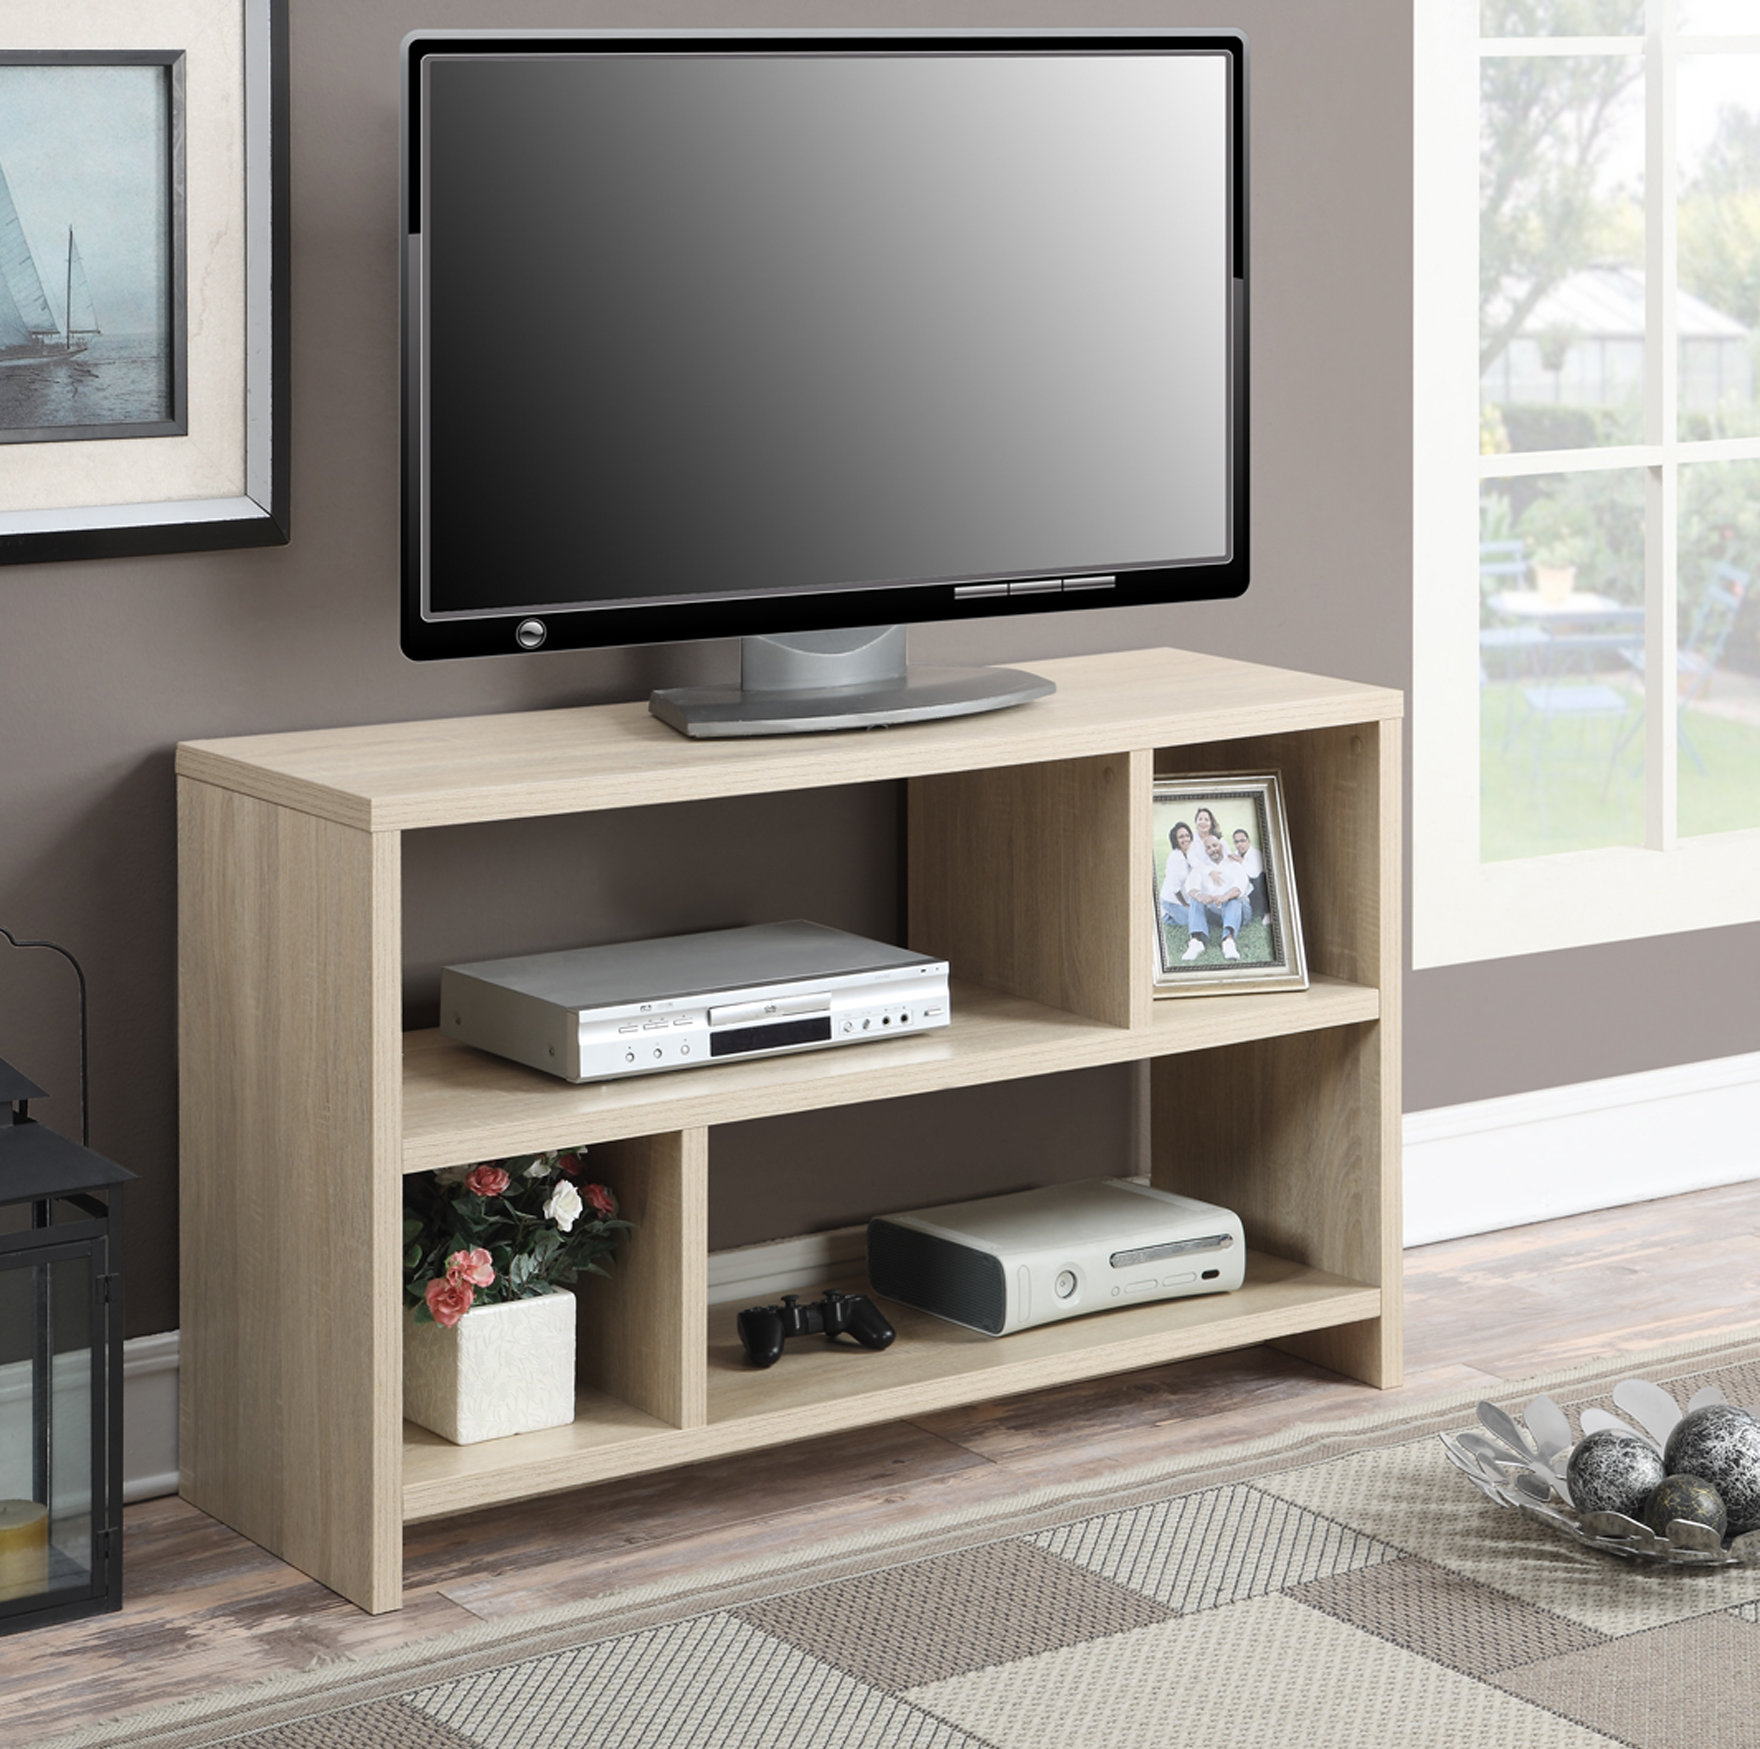 """D'aulizio Tv Stand For Tvs Up To 43"""" Pertaining To Ericka Tv Stands For Tvs Up To 42"""" (View 5 of 20)"""